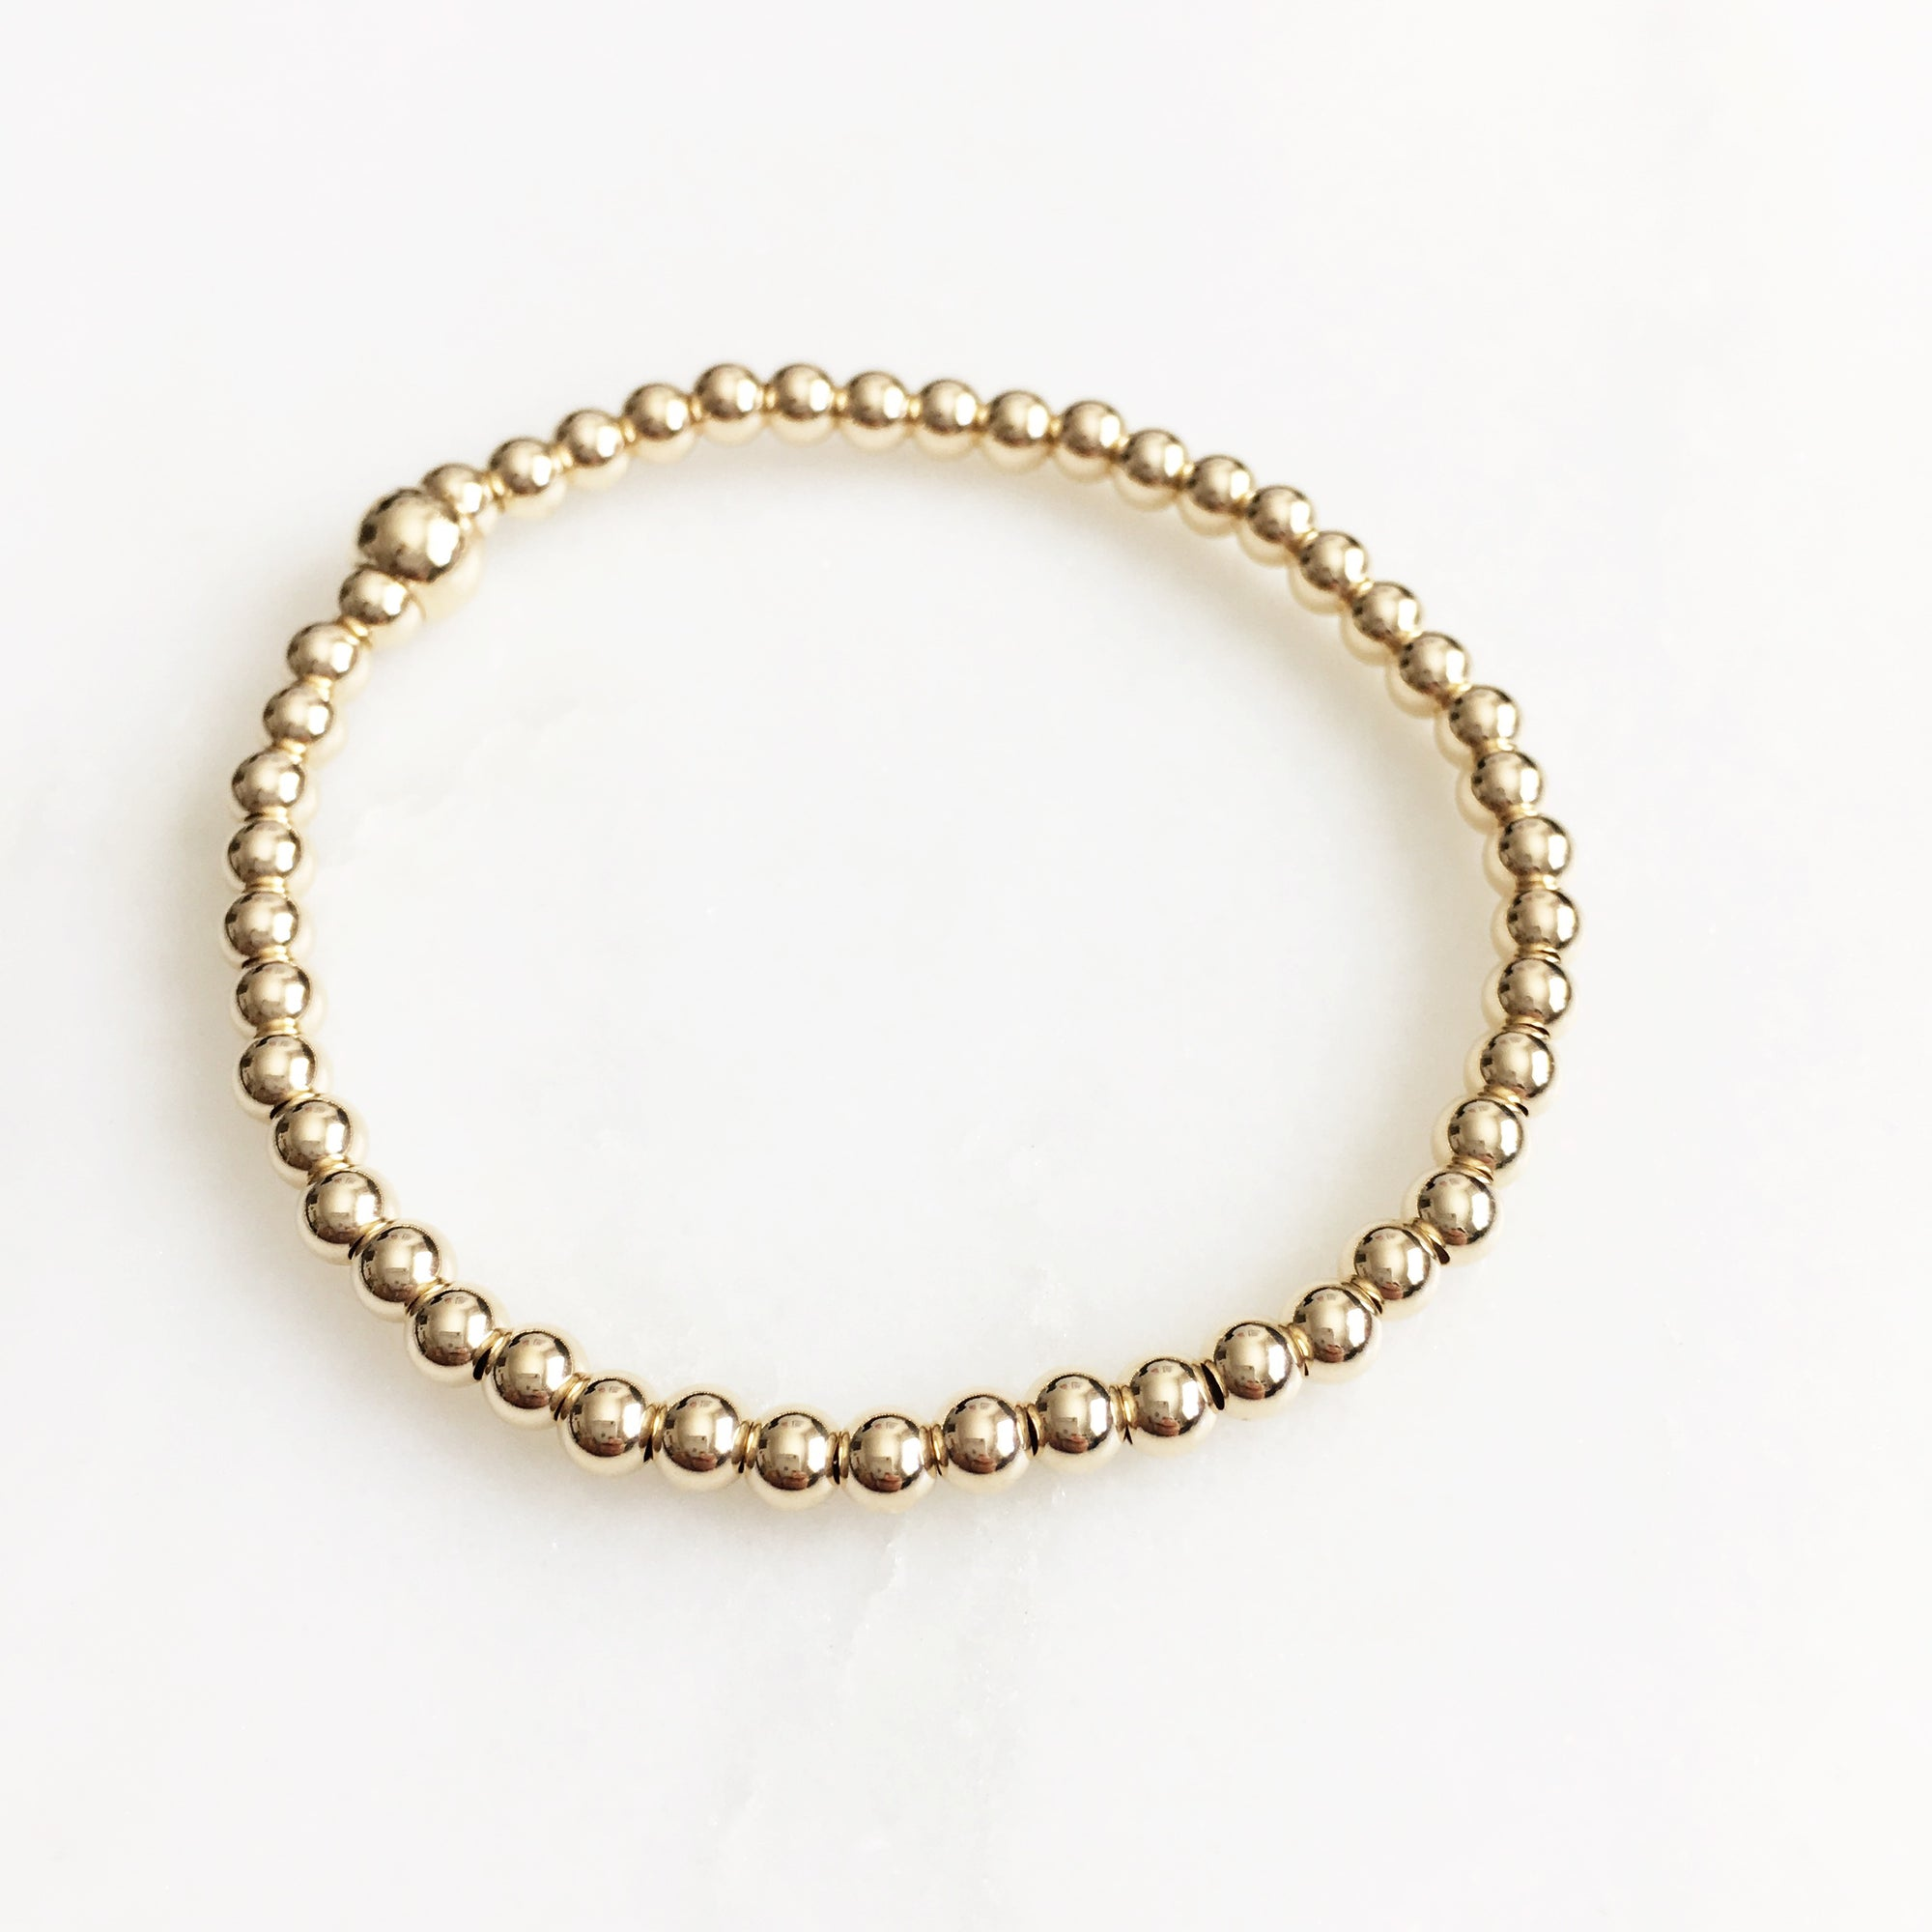 Gold Filled Beads Bracelet (4mm)